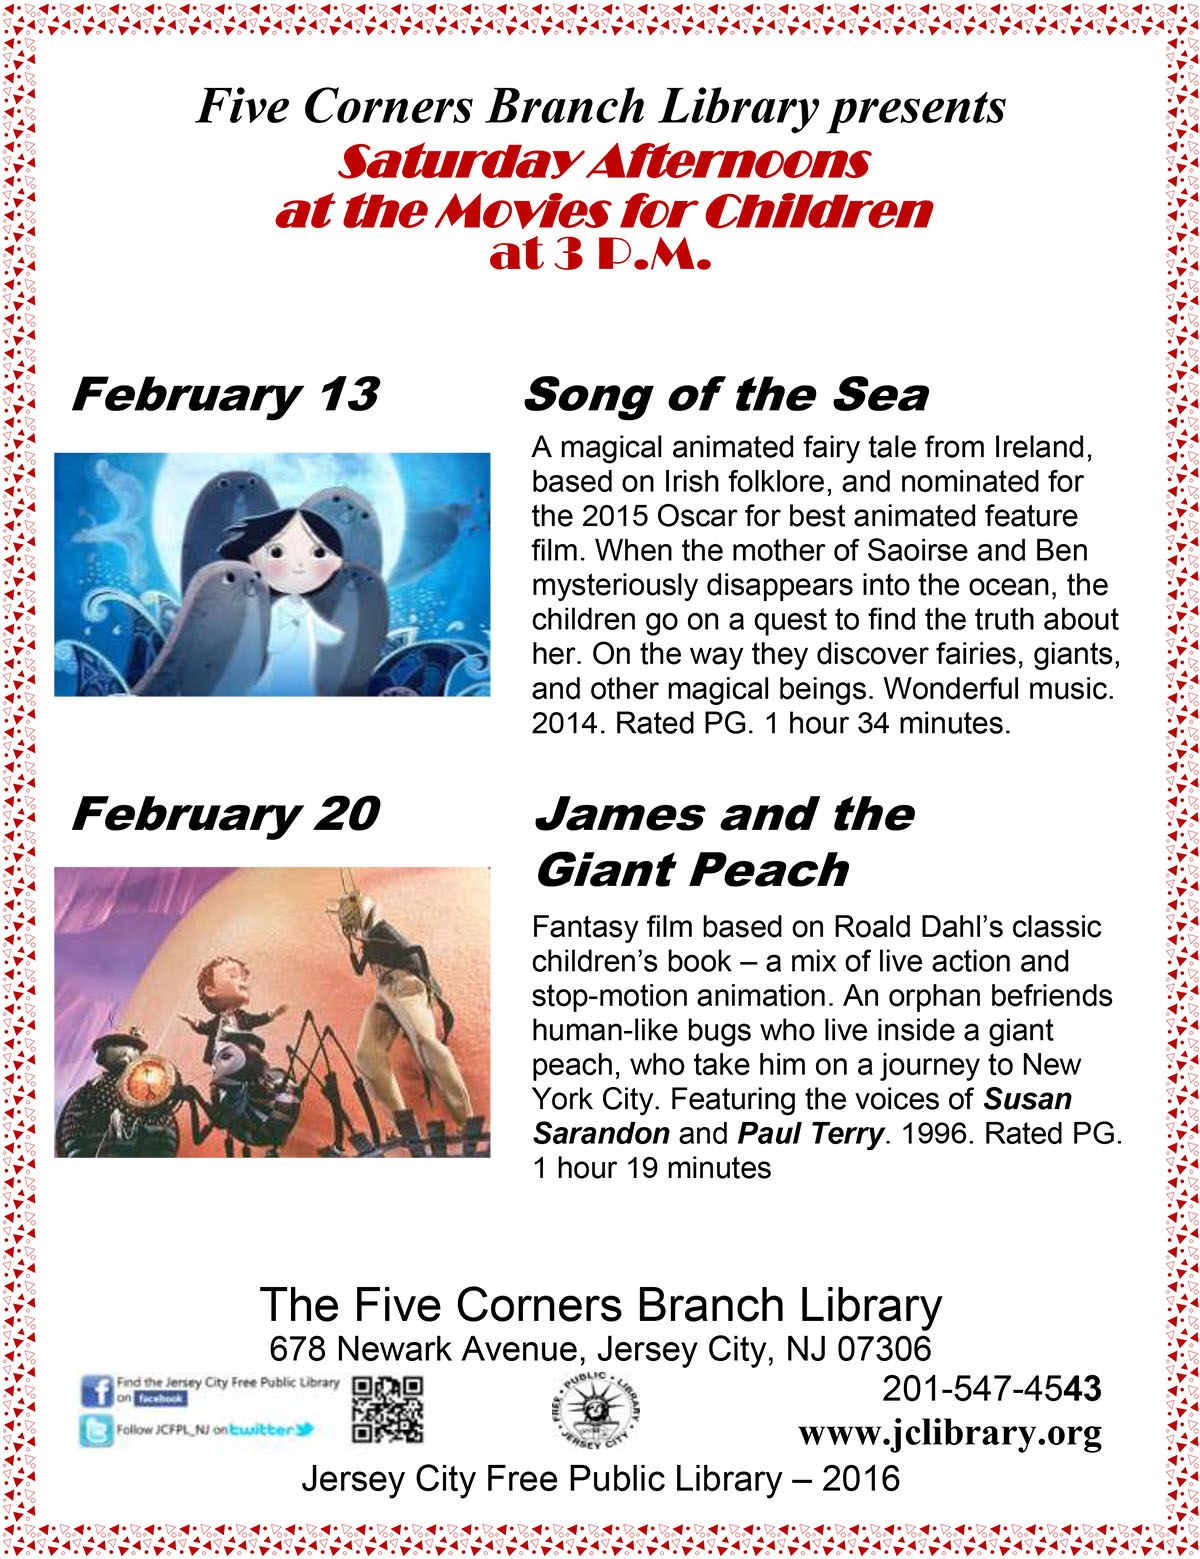 Saturday Afternoons at the Movies for Children: Song of the Sea